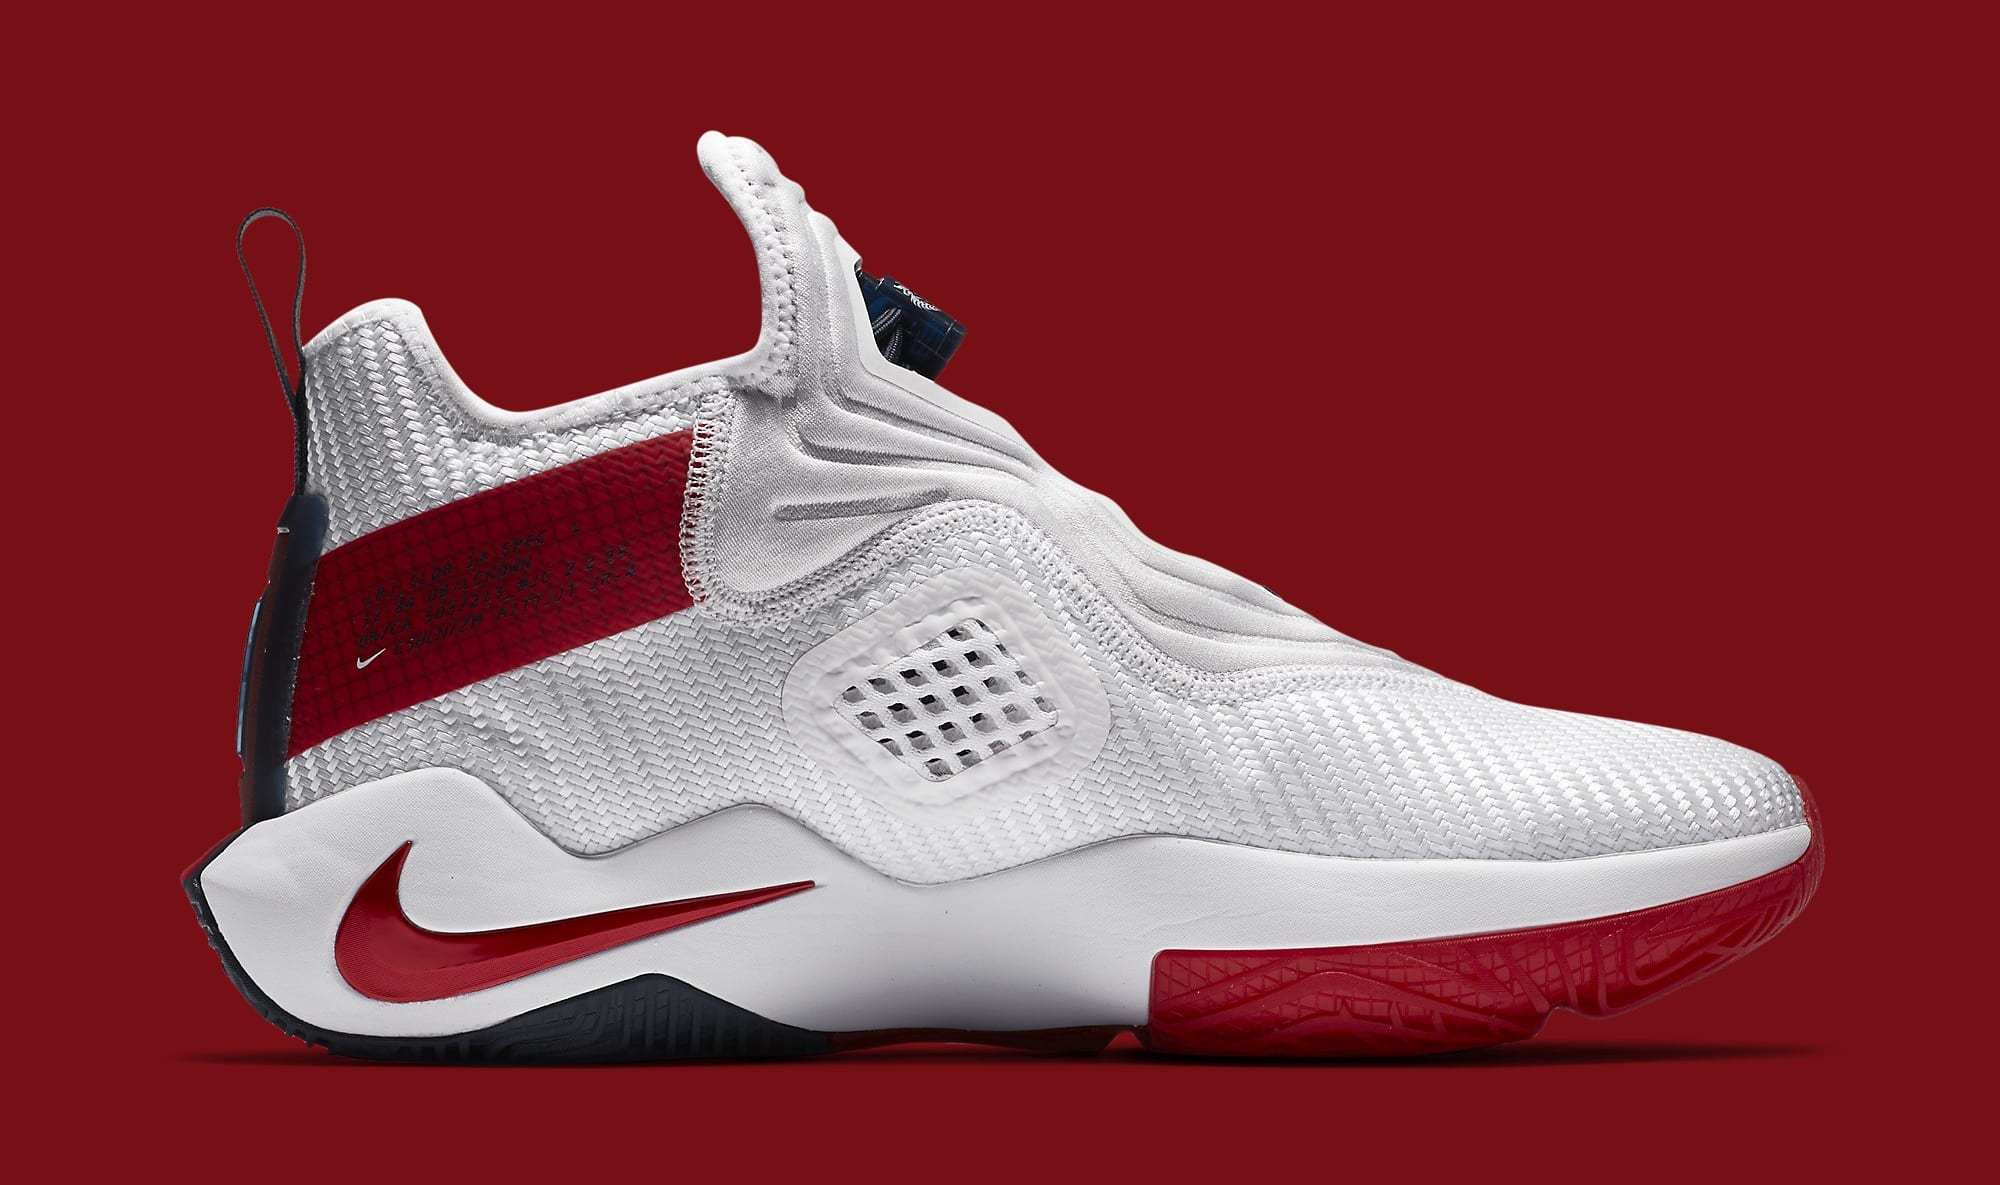 Nike LeBron Soldier 14 White/University Red-Team Red CK6024-100 Medial